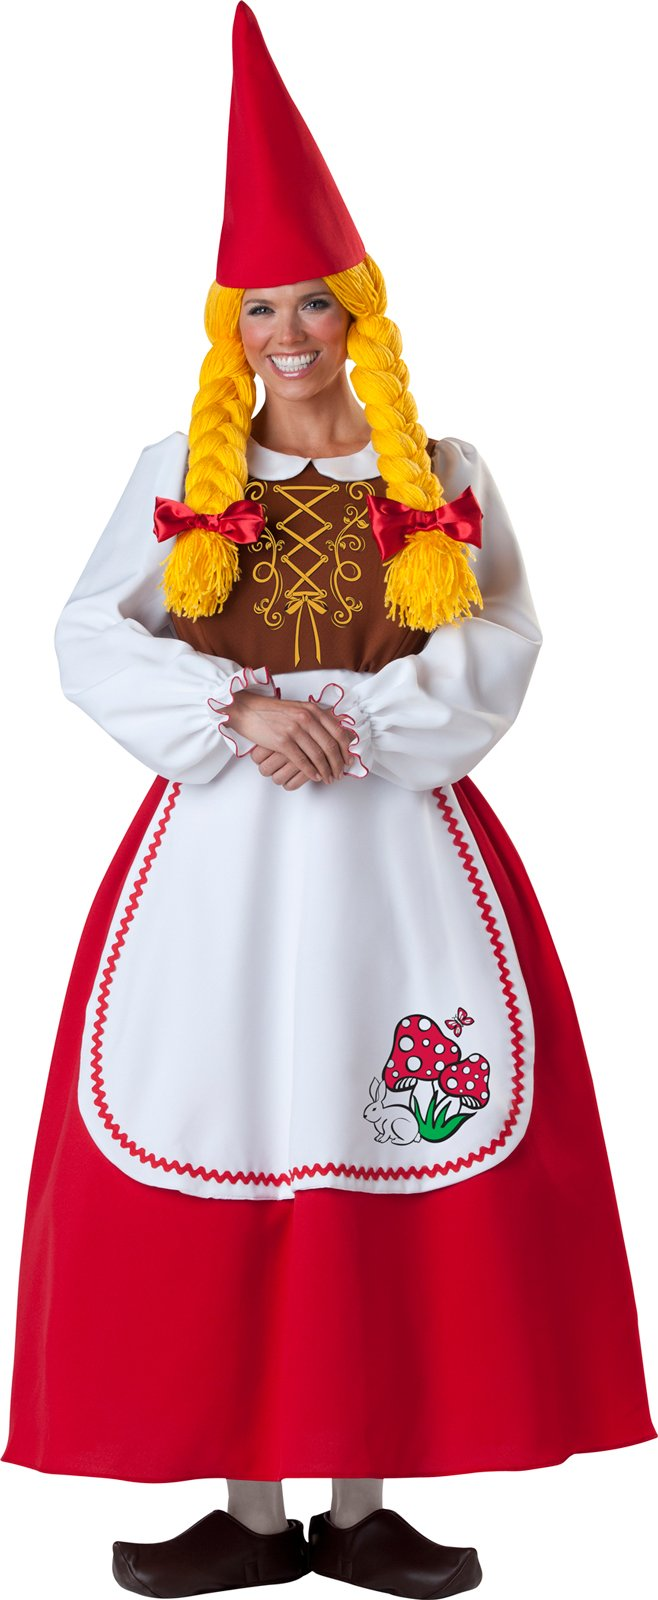 Mrs. Garden Gnome Elite Collection Adult Costume